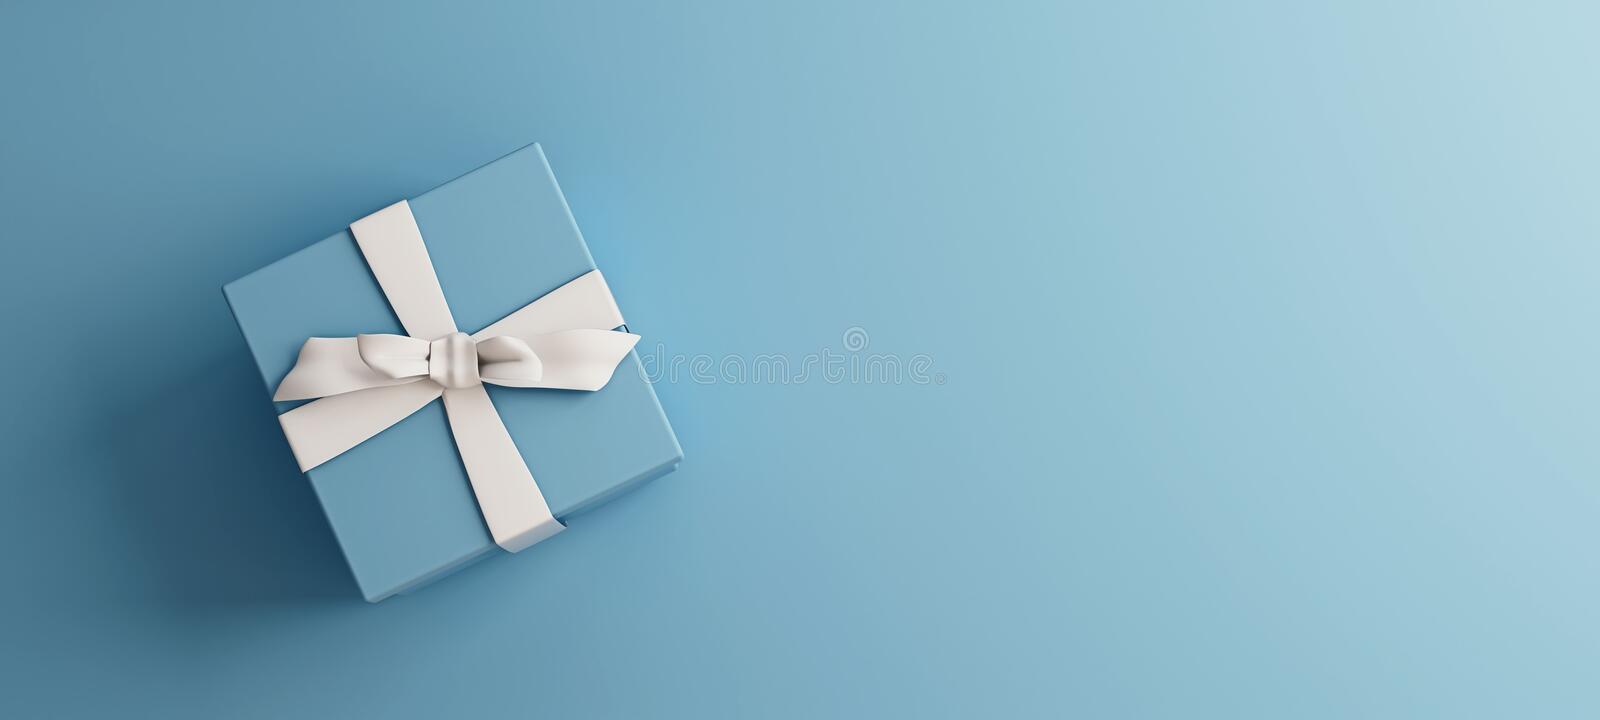 Mock-up poster, baby blue gift box with white bow on light blue background stock photo